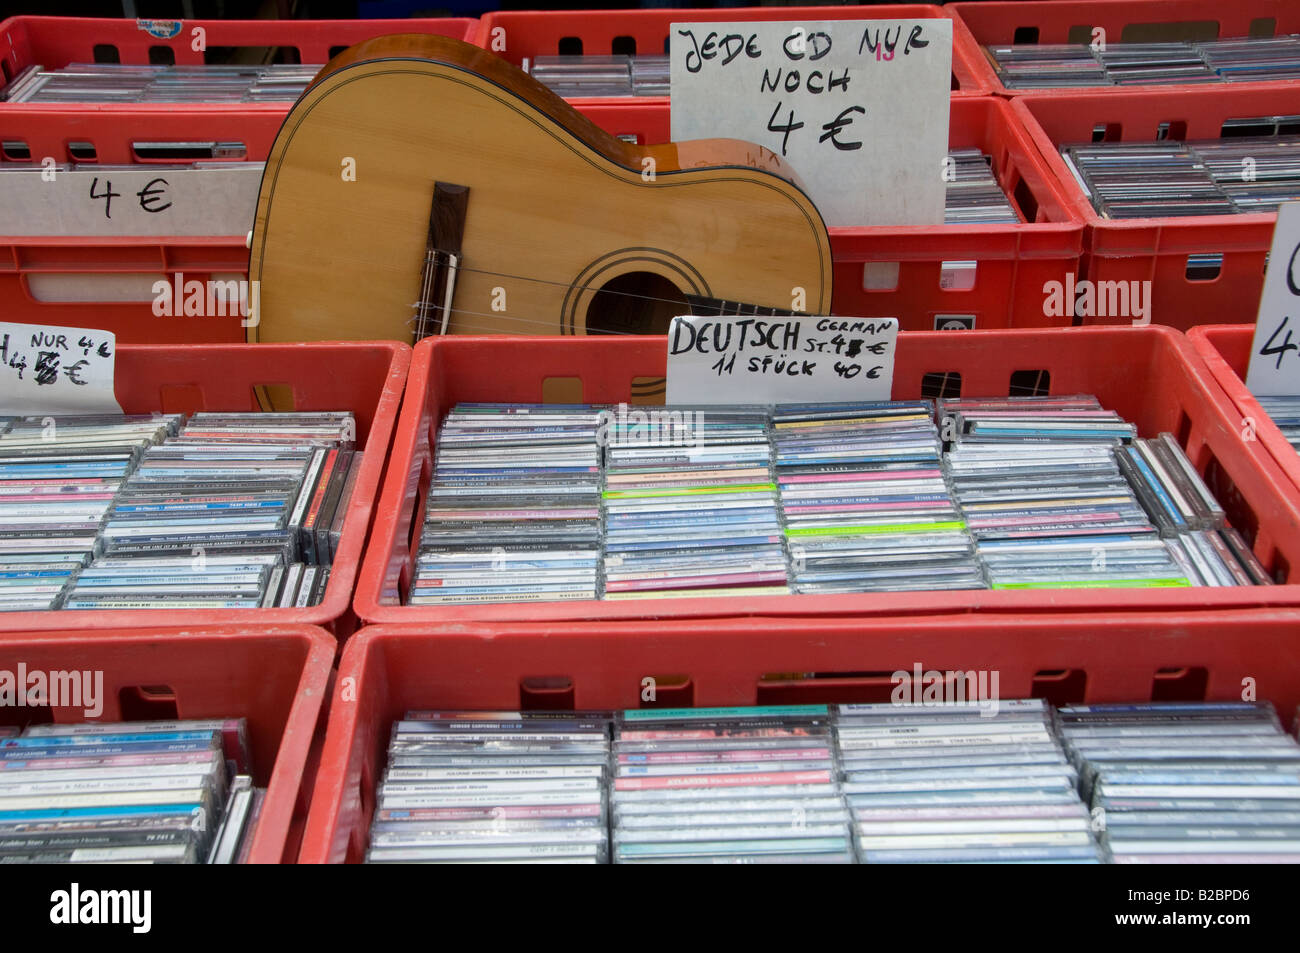 Music Cd Disks For Sale In The Flea Market In Museumsinsel Museum Stock Photo Alamy